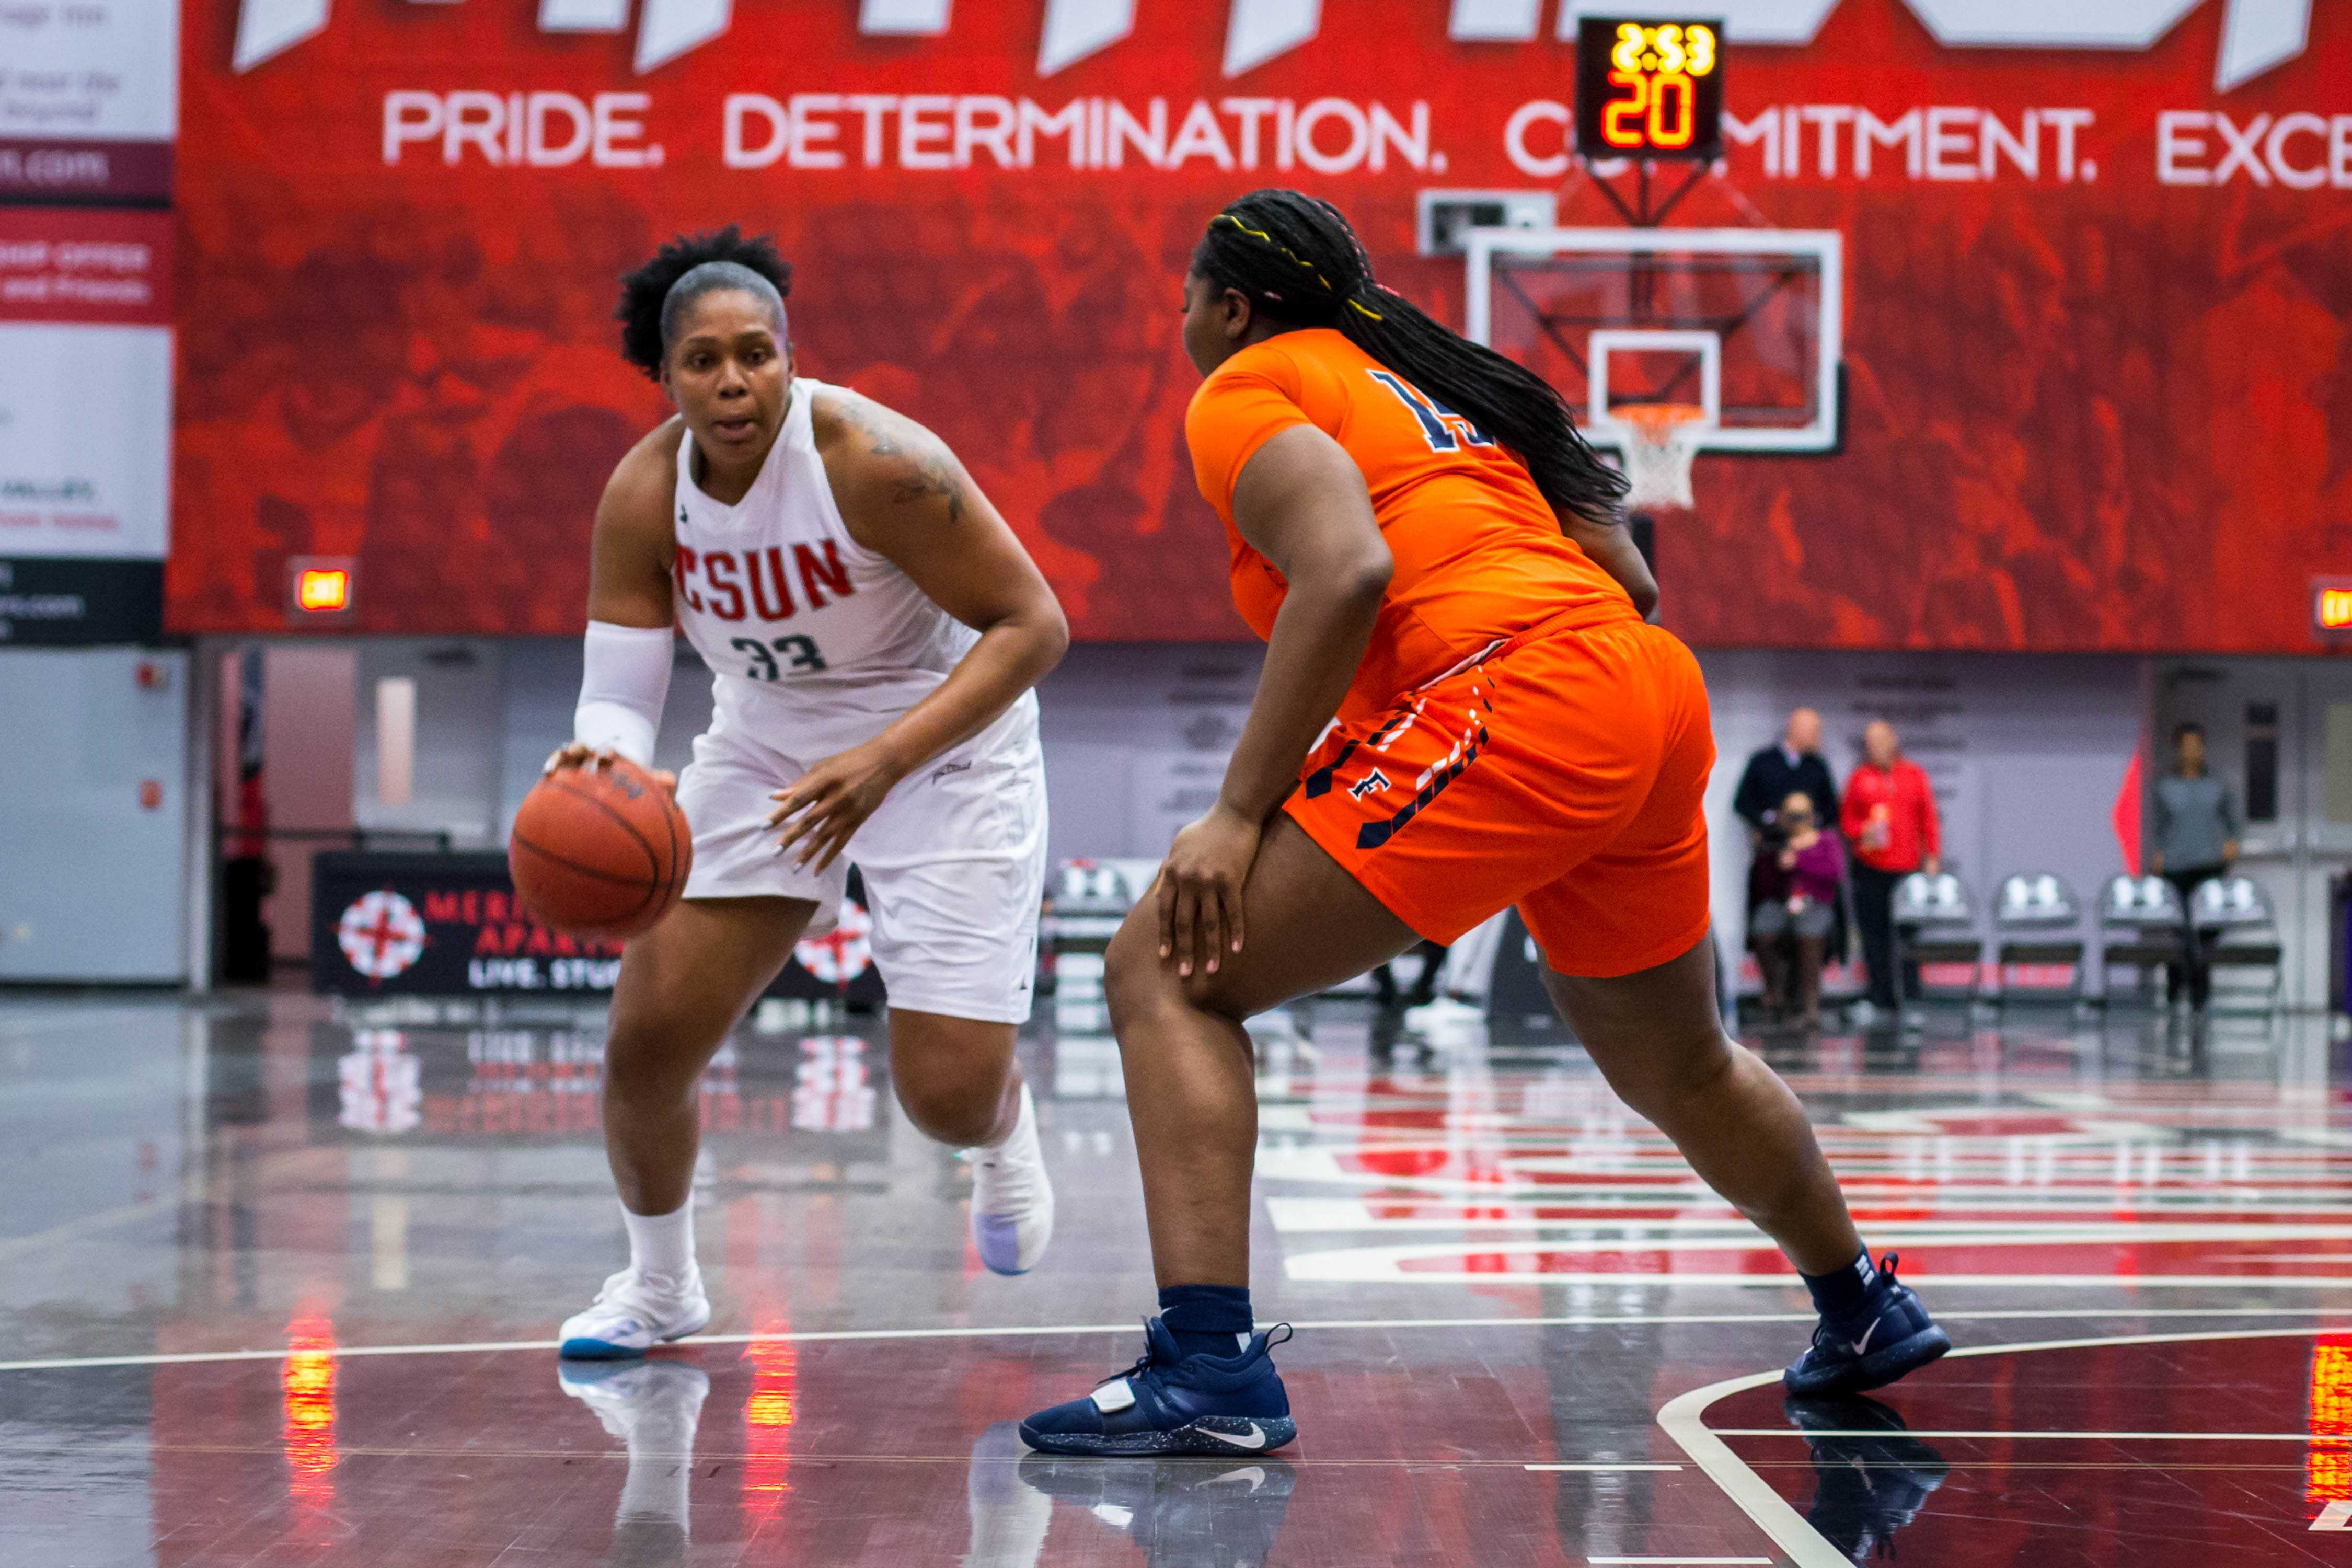 A CSUN Women's basketball play in wihte jersey handing the ball to get pass a denfender in orange jersey.